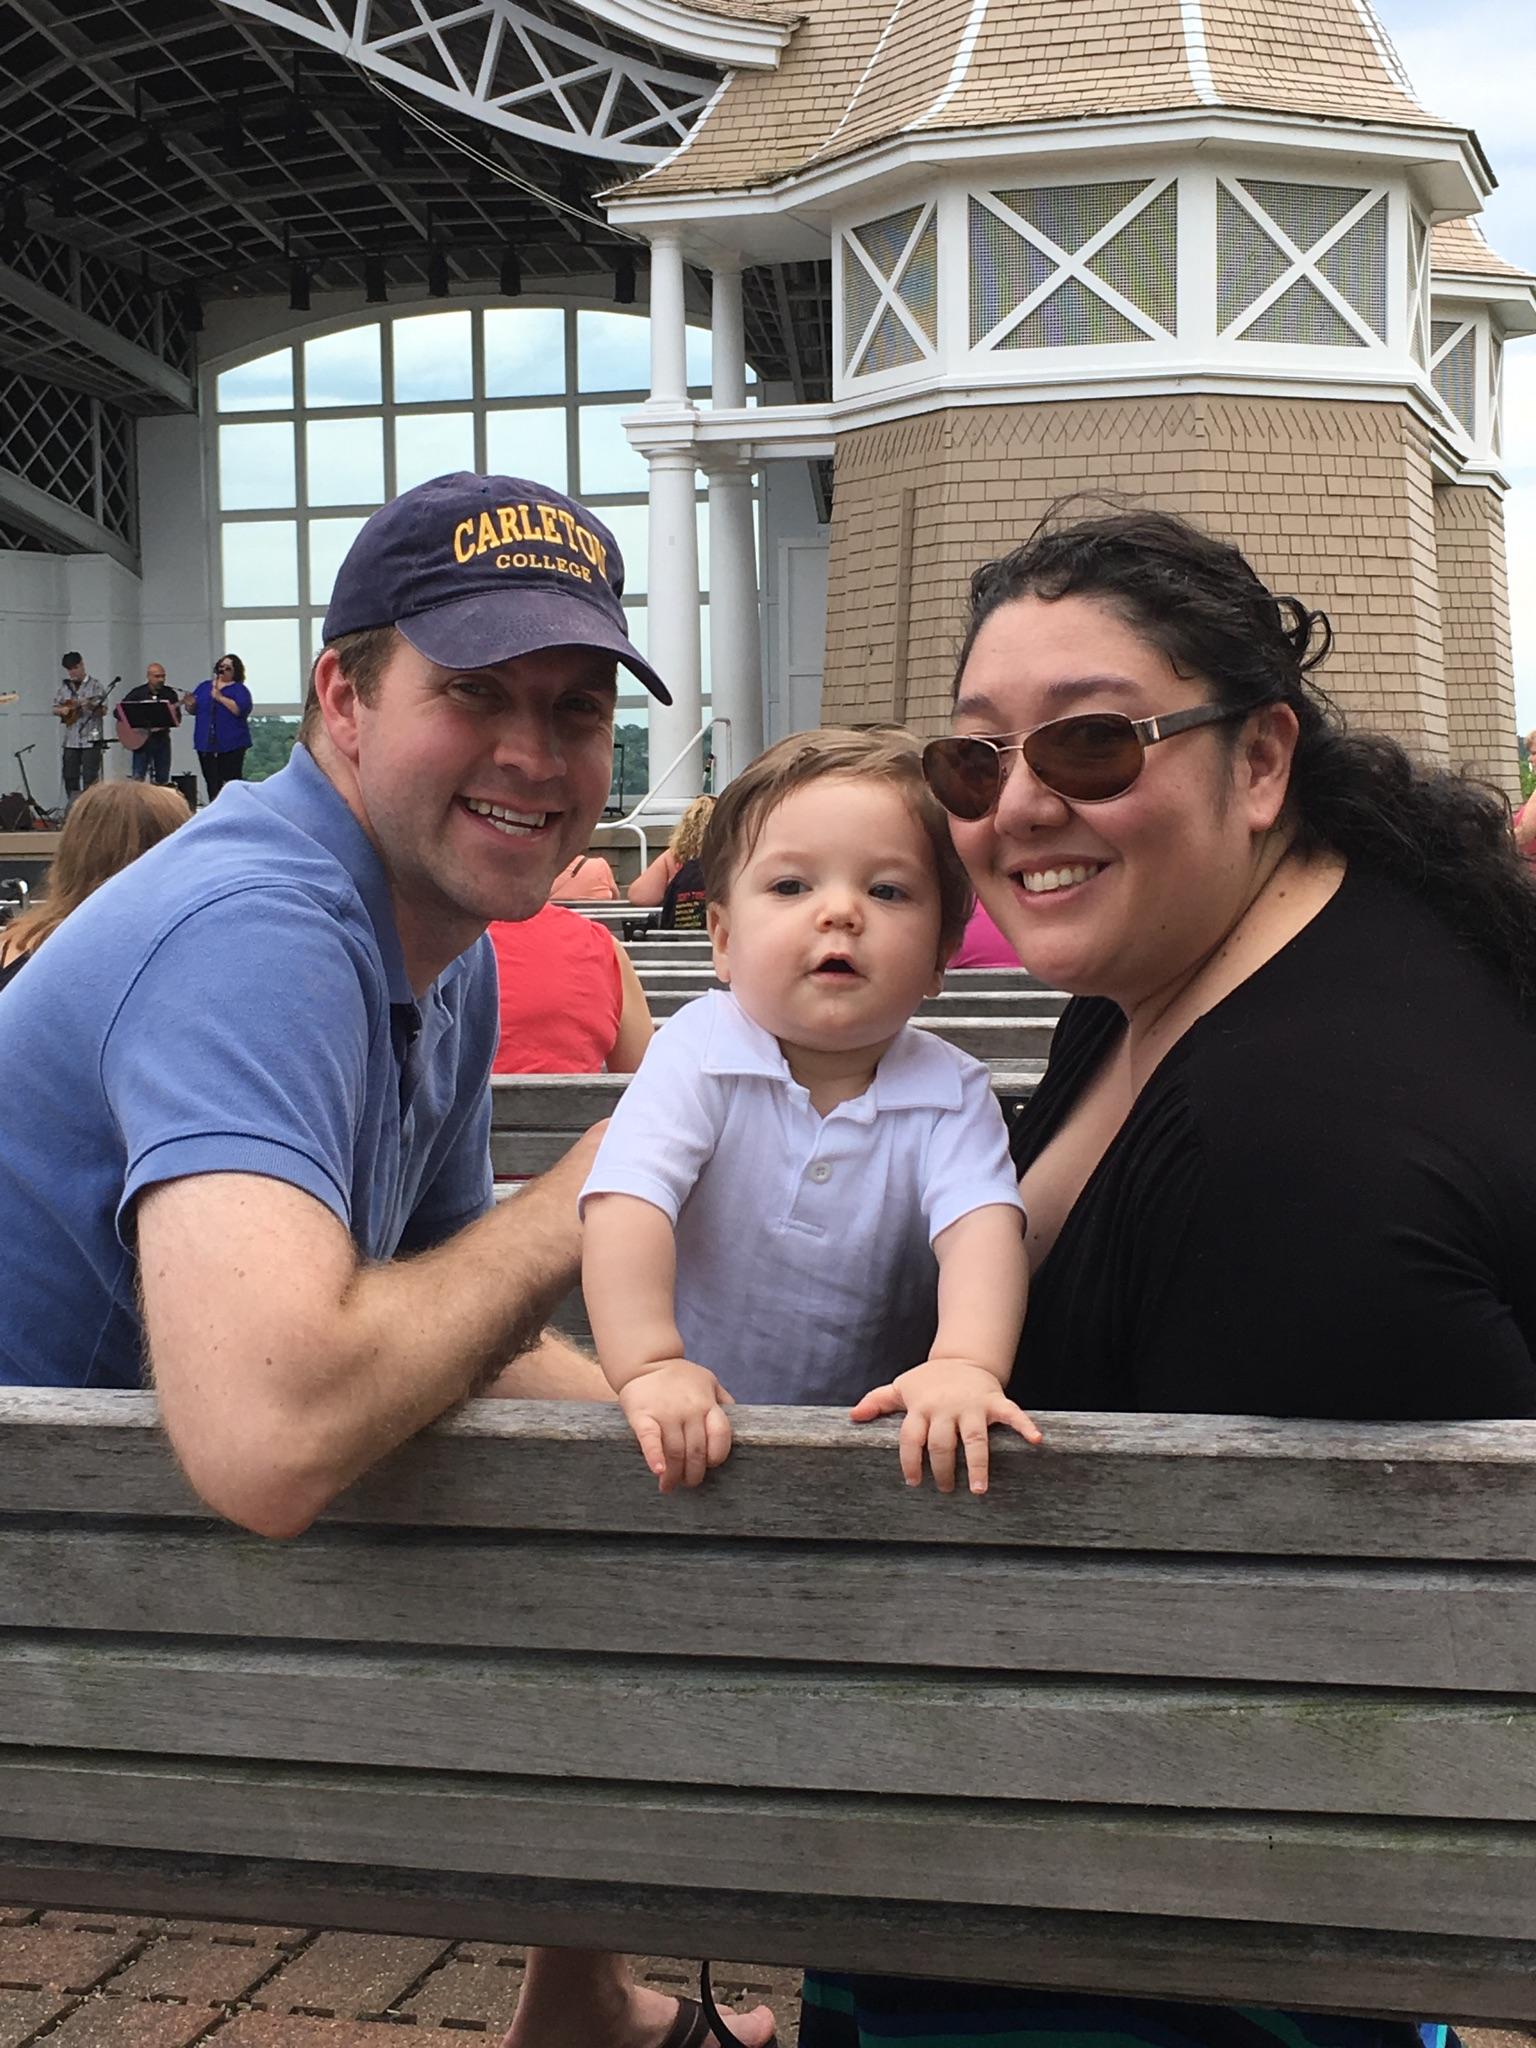 Enjoying an Afternoon at the Bandshell